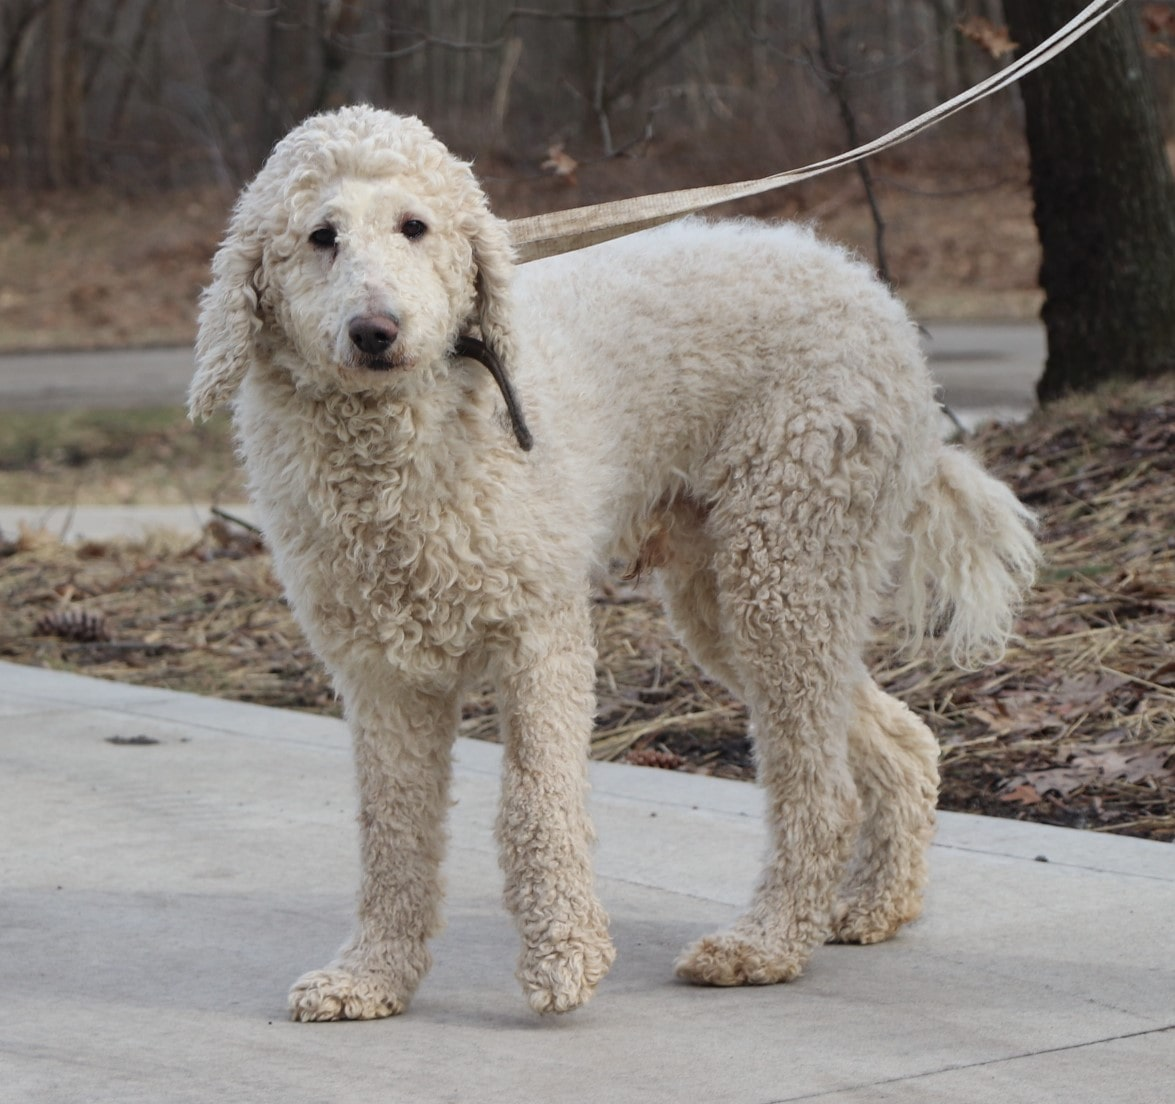 Sparky, the Standard Poodle dad